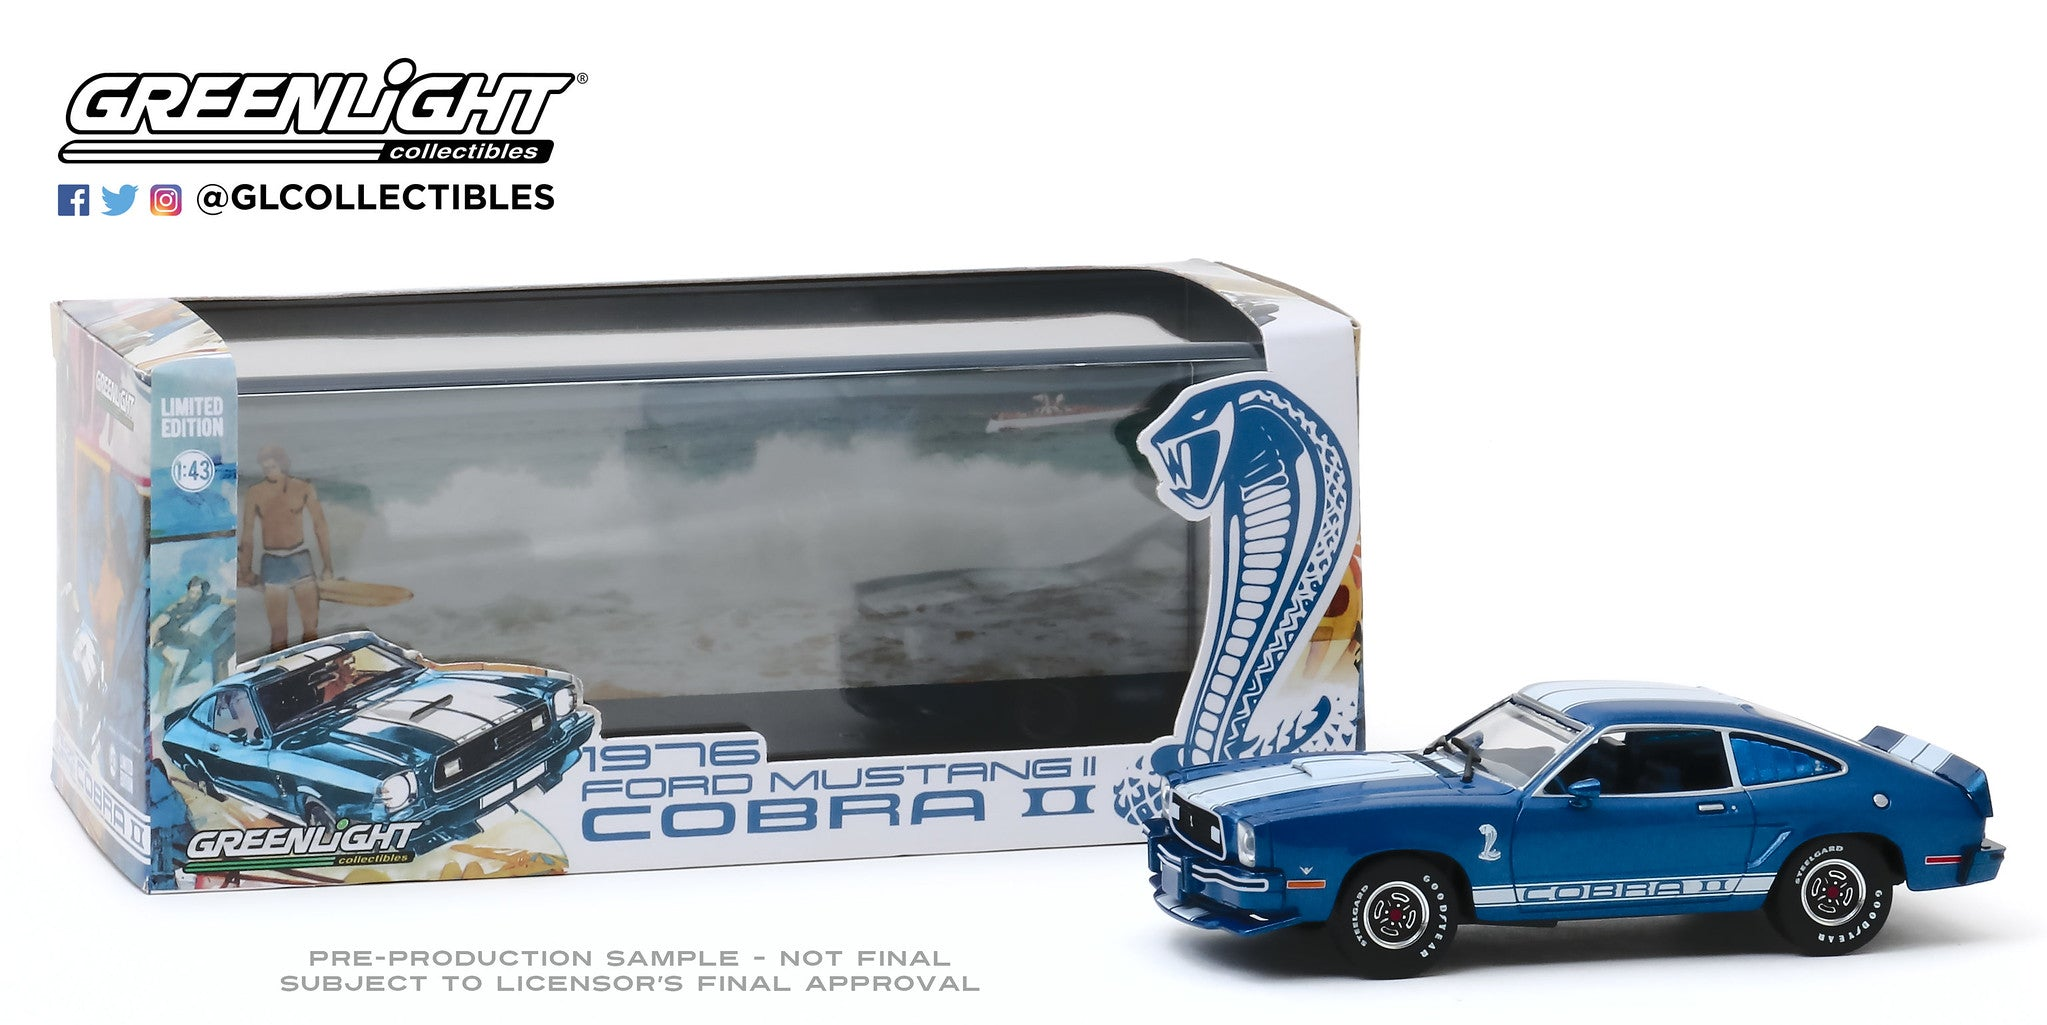 GreenLight 1:43 1976 Ford Mustang II Cobra II - Blue with White Stripes 86336